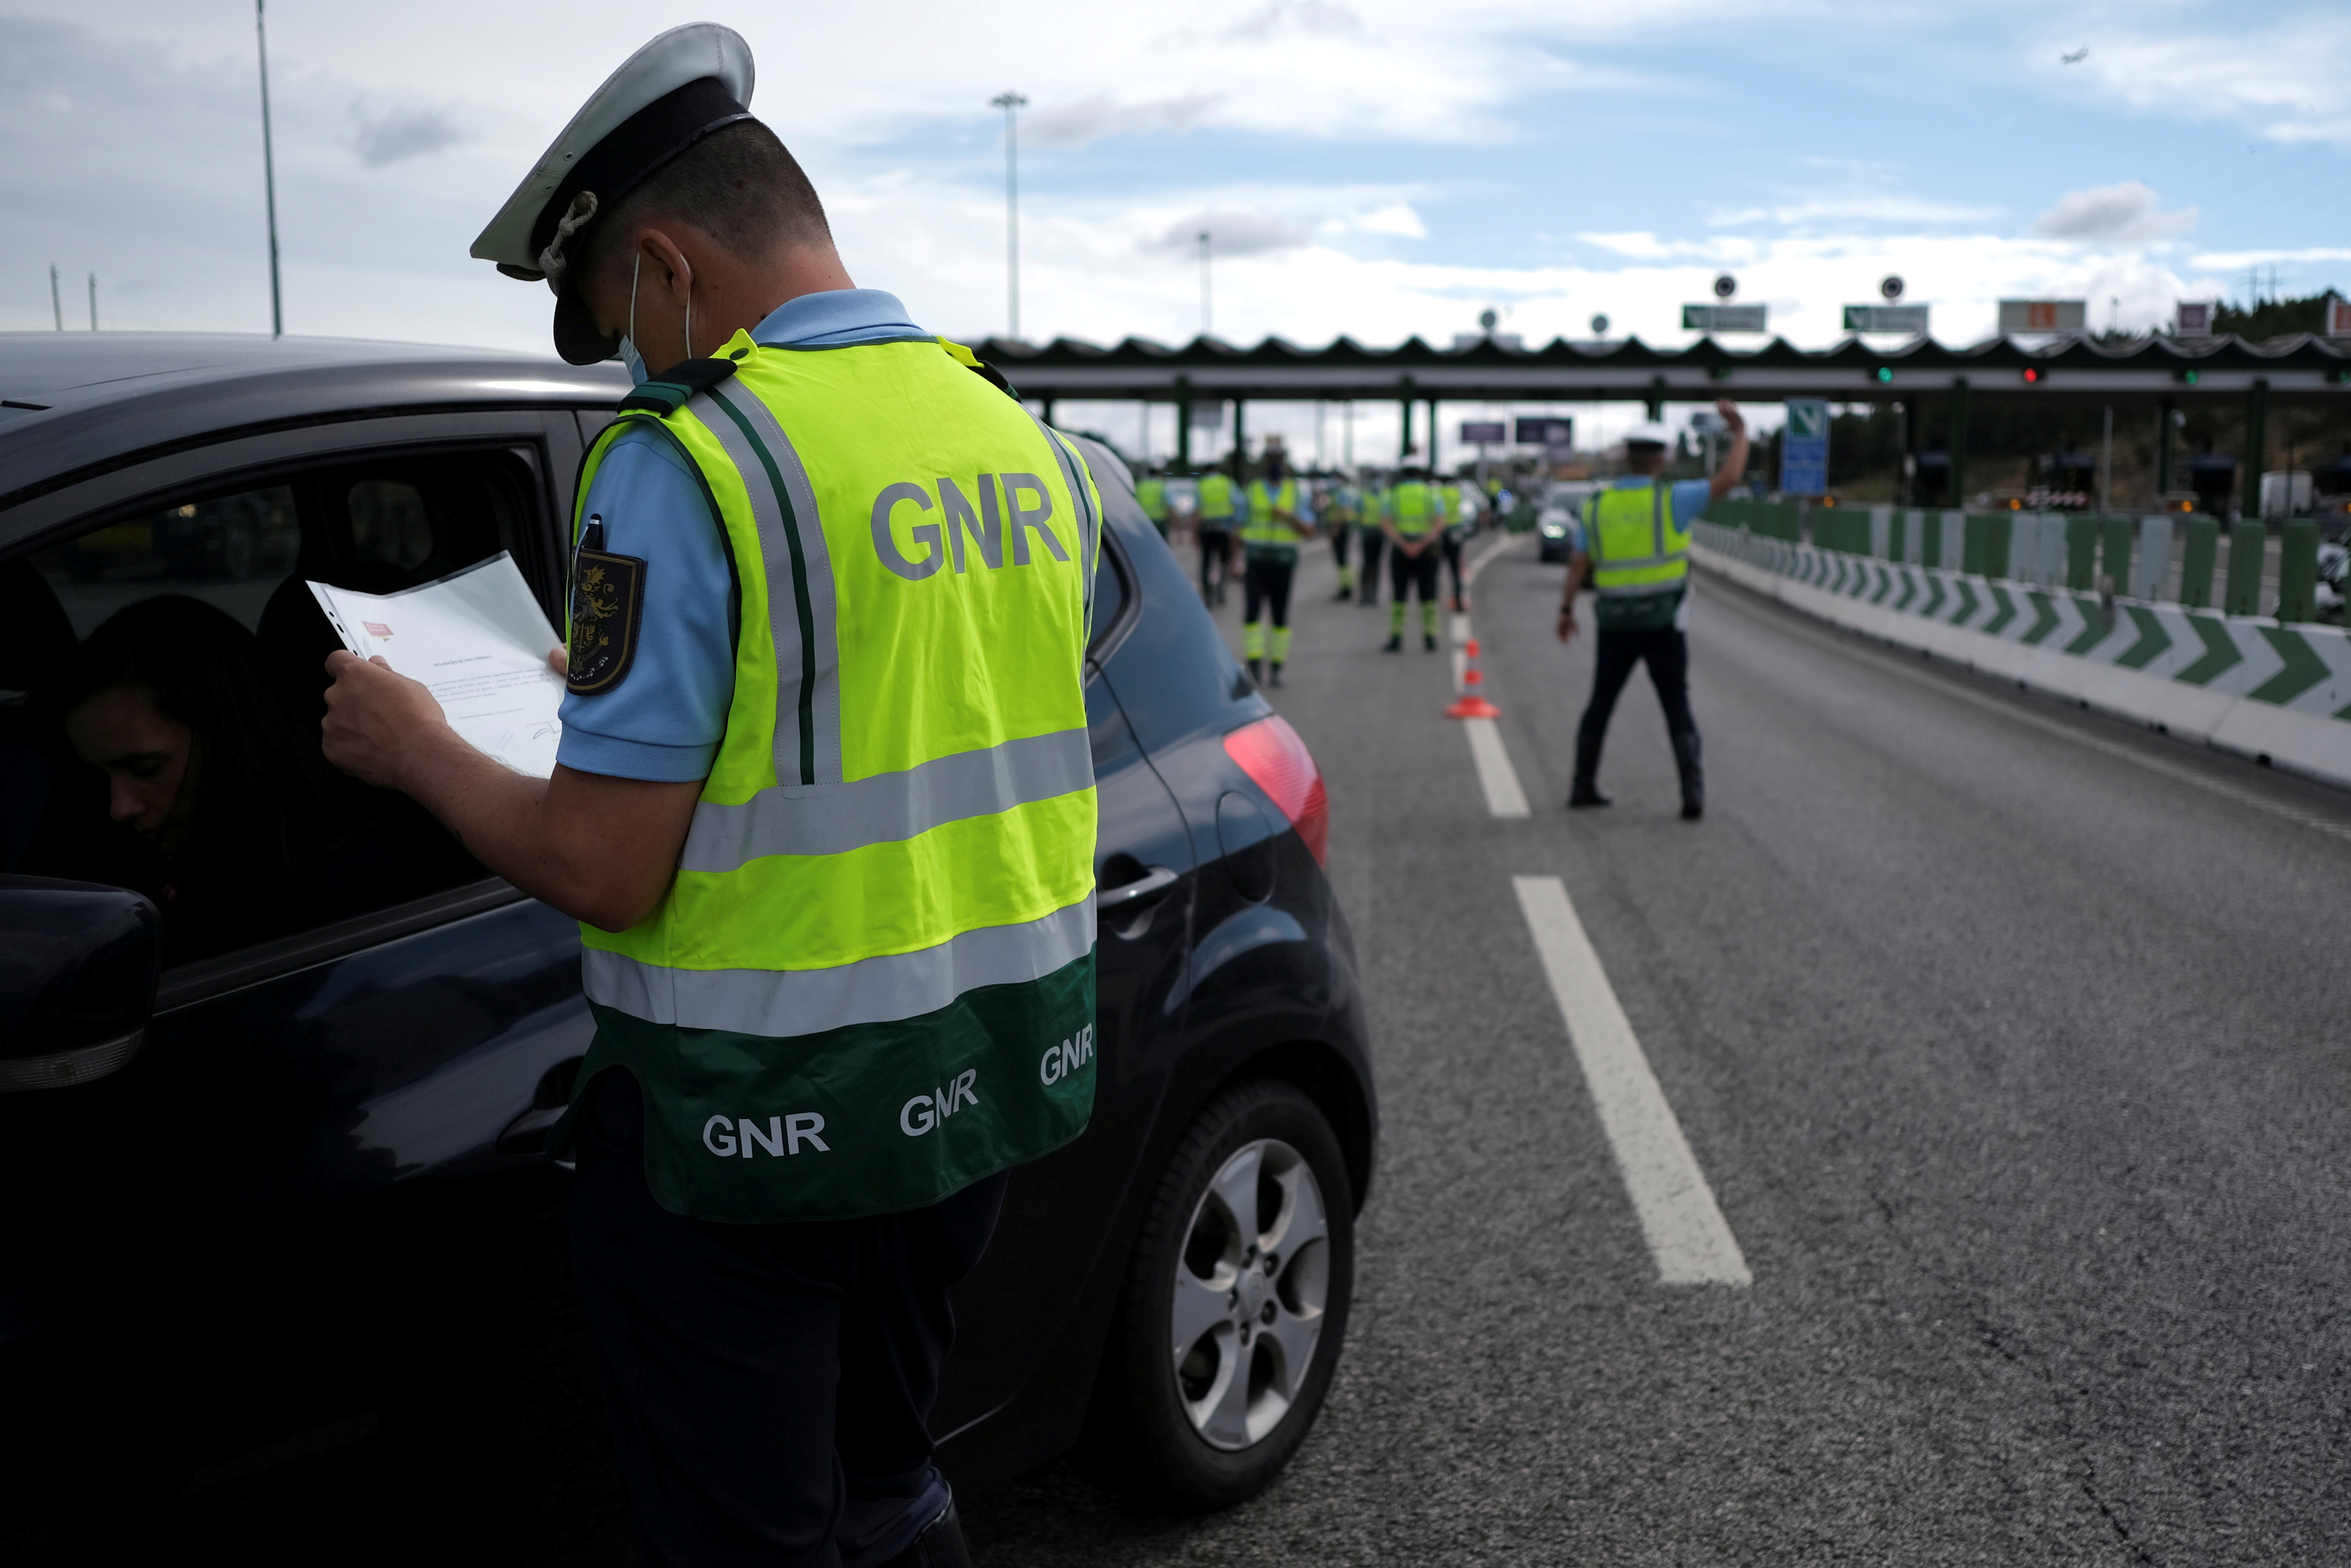 Police officers stop cars at a checkpoint to stop unauthorised travel into and out of Lisbon's metropolitan area, a move to contain a new surge in COVID-19, in Alverca, Portugal, June 18, 2021. REUTERS/Pedro Nunes/File Photo